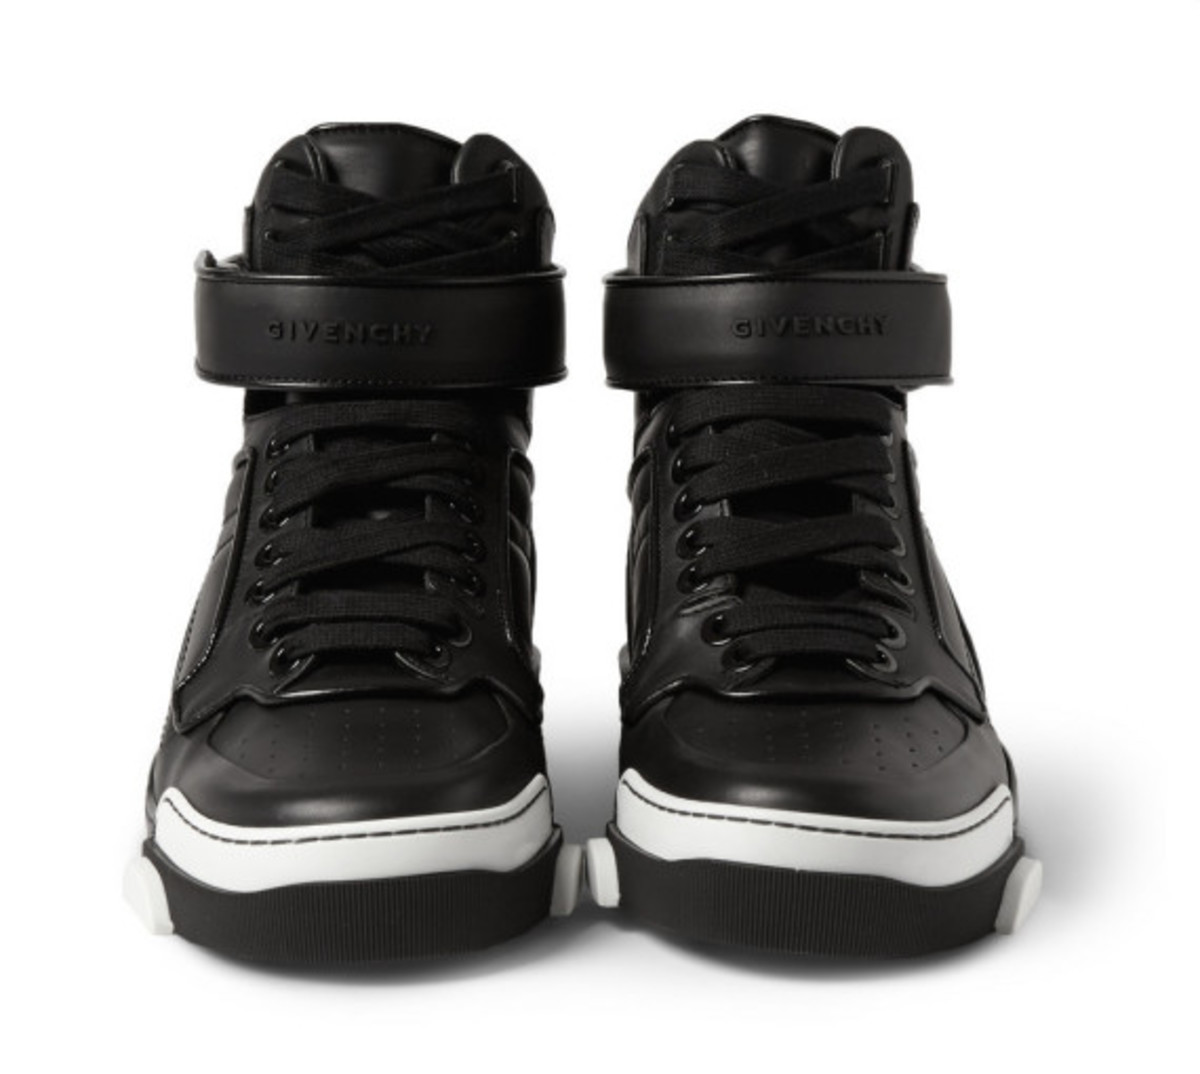 givenchy-tyson-high-top-leather-sneakers-01